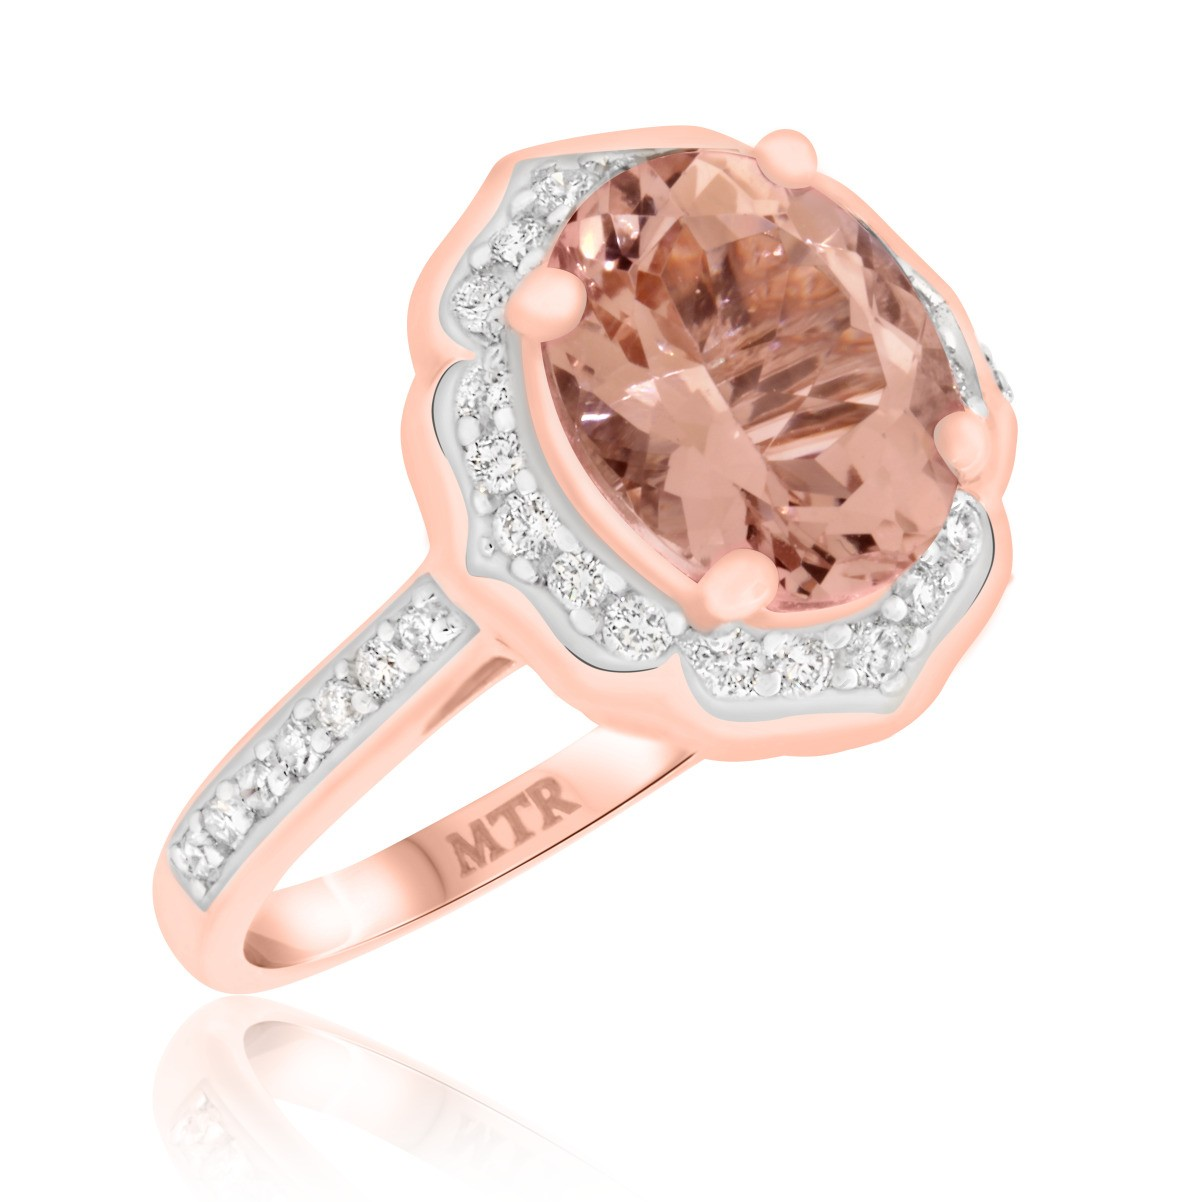 2 1/3 CT. T.W. Morganite and Diamond Engagement Ring 14K Rose Gold